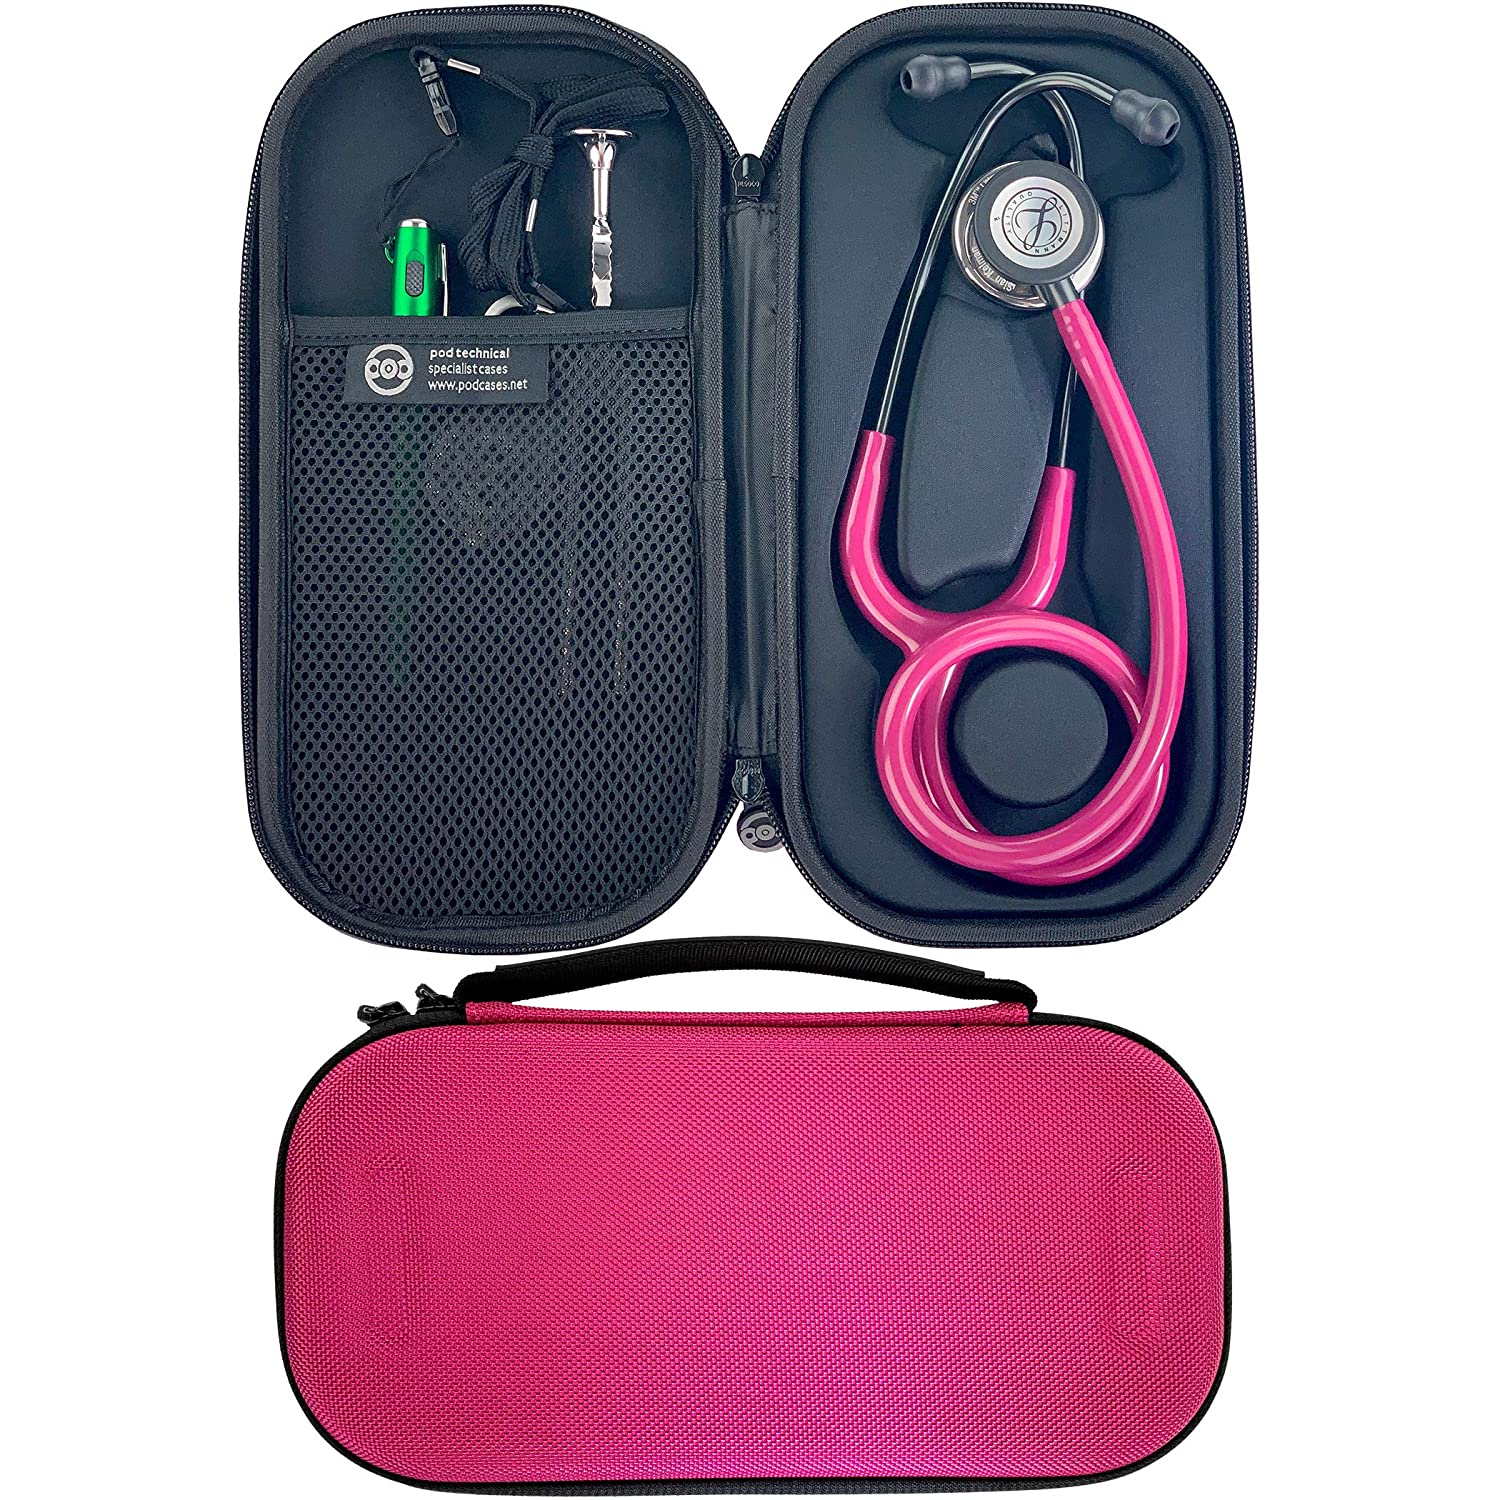 Pod Technical Classicpod - Funda para estetoscopio Littmann Classic Stethoscopes (microestetoscopio), color rosa